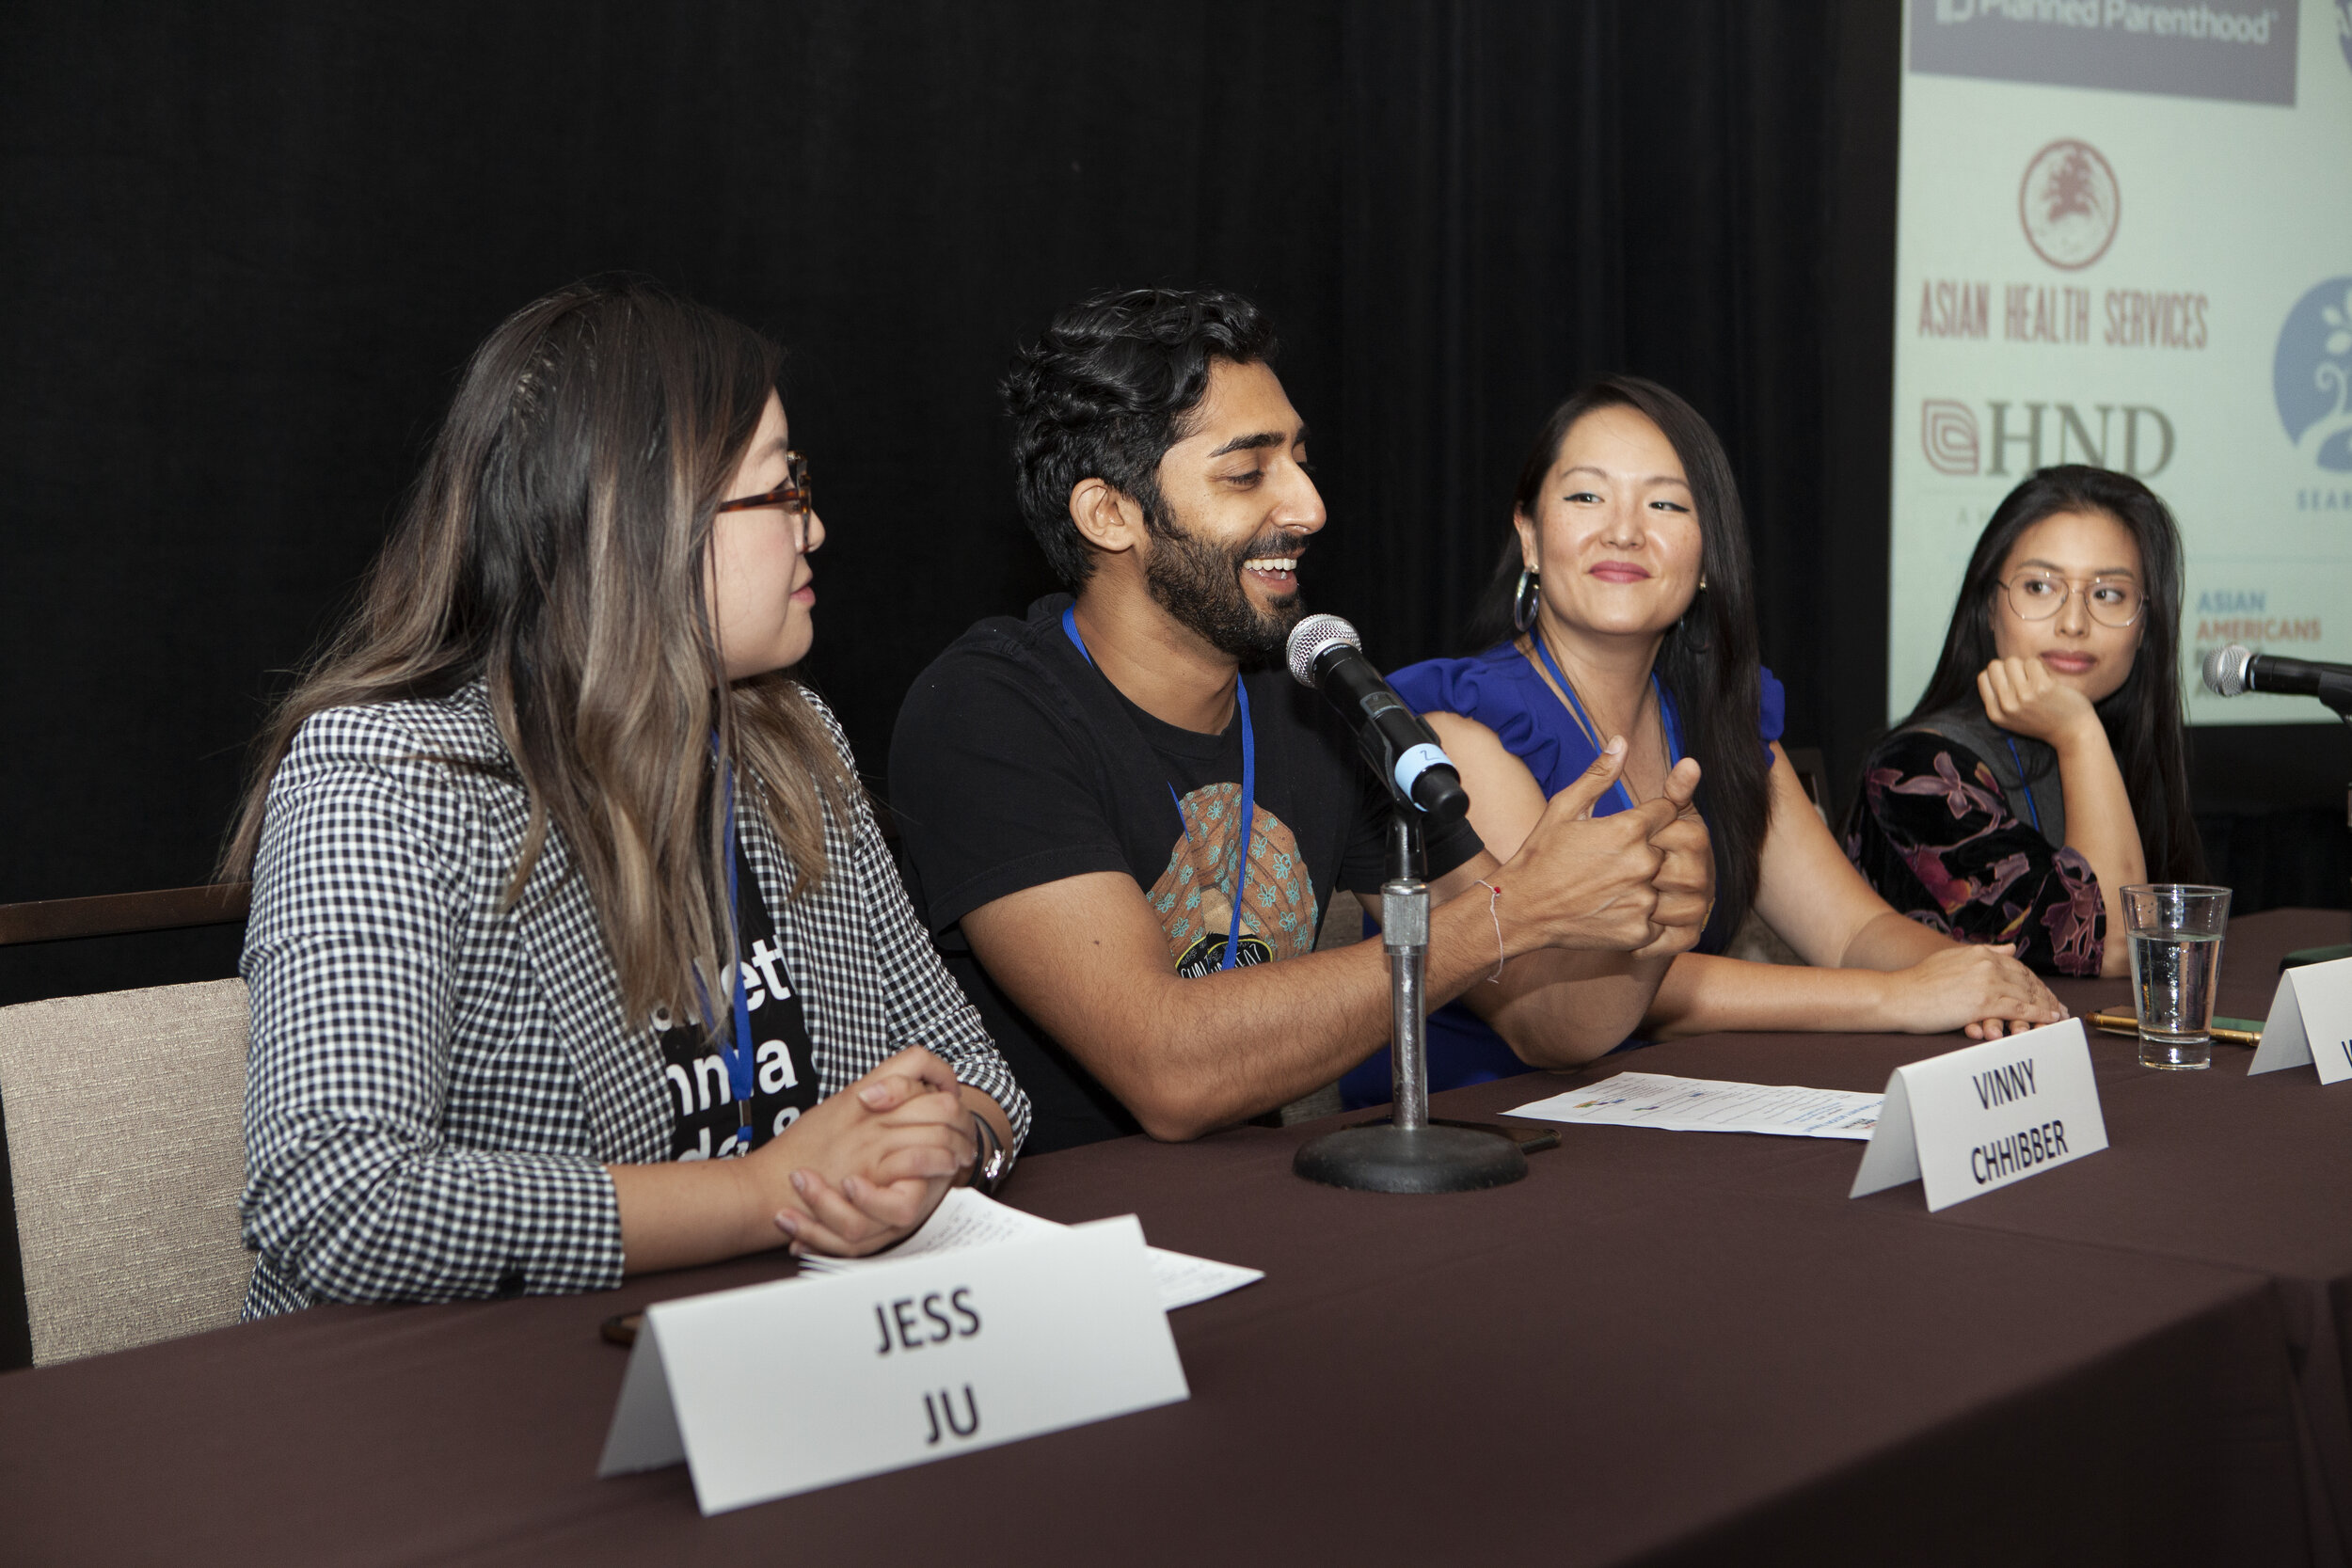 Jess Ju. Vinny Chhibber, Nancy Wang Yuen, and Vivien Ngô discuss being AAPI in Hollywood at the AAPI Community Action Summit.